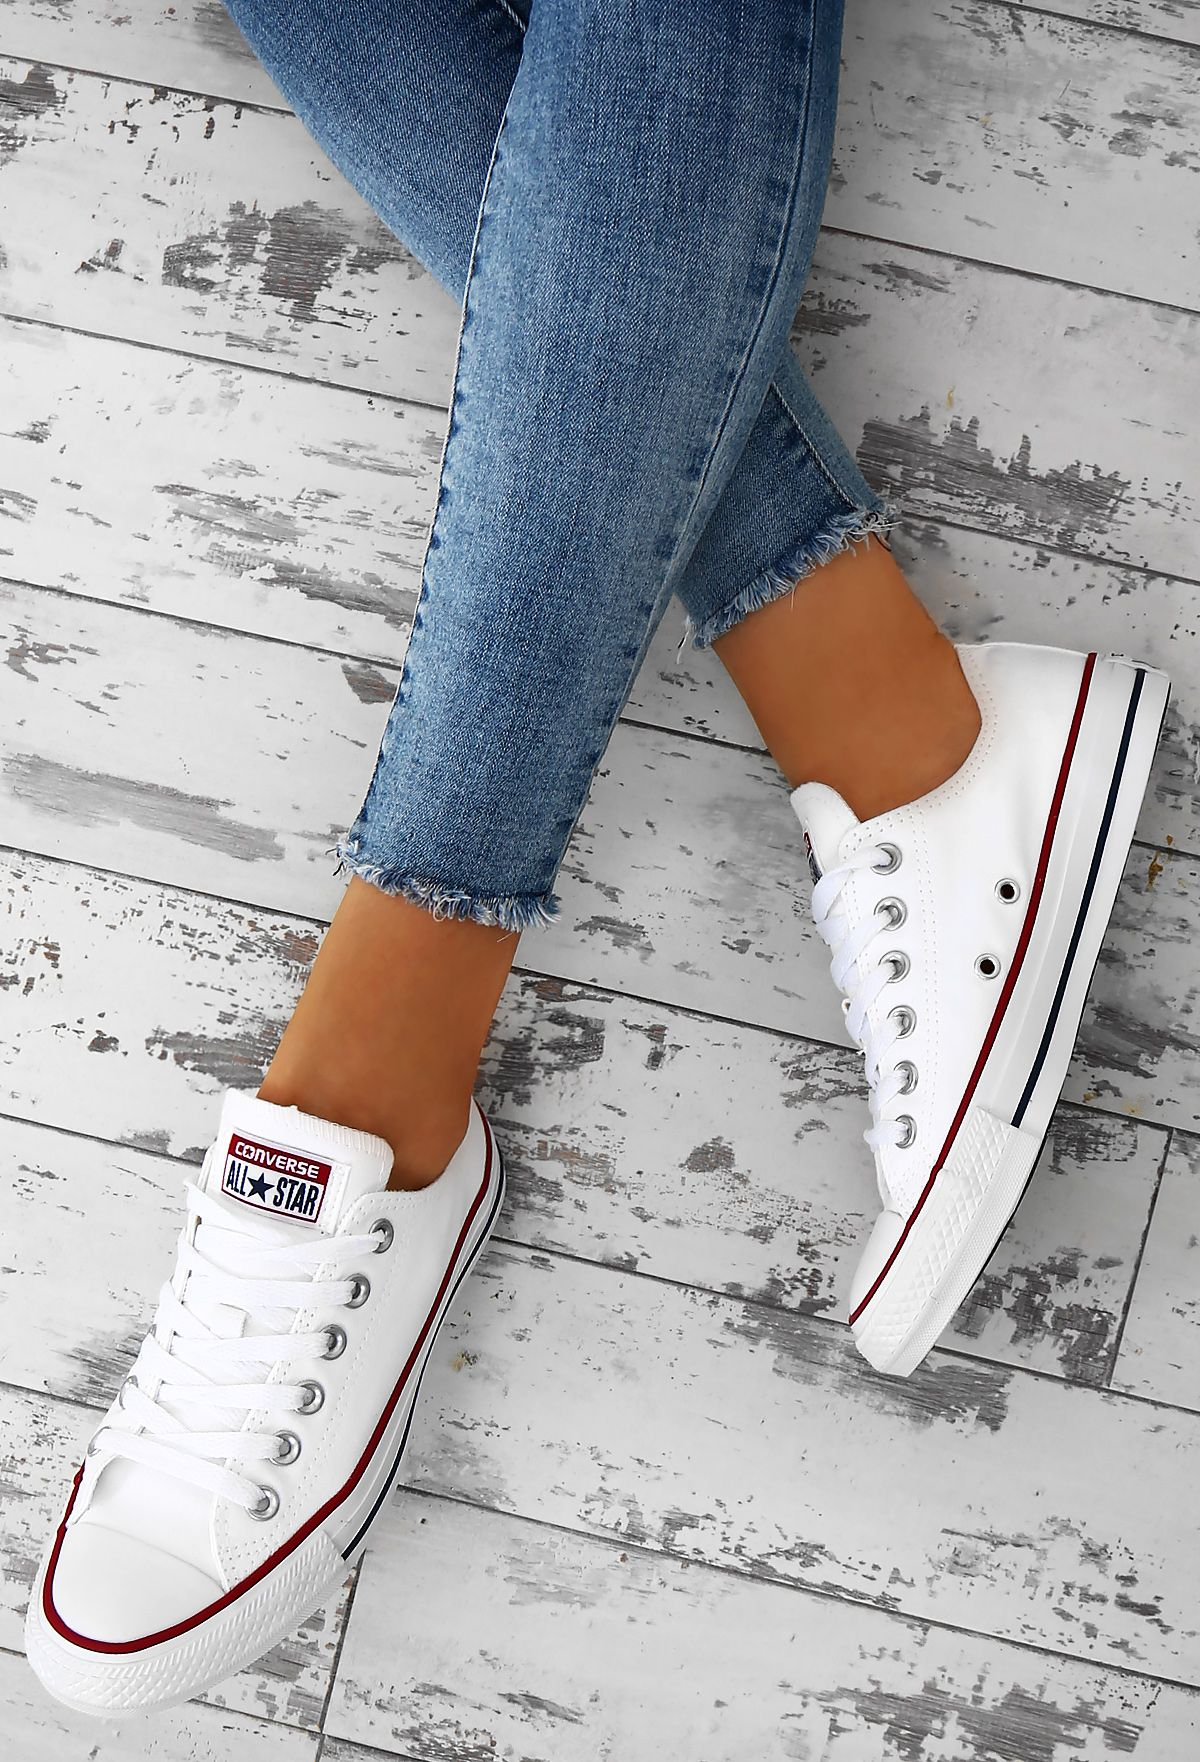 ea49700b3b62 Every girl needs a pair of Converse All Stars in her wardrobe! These  classic white Converse trainers feature a rubber capped toe and branding on  the back.